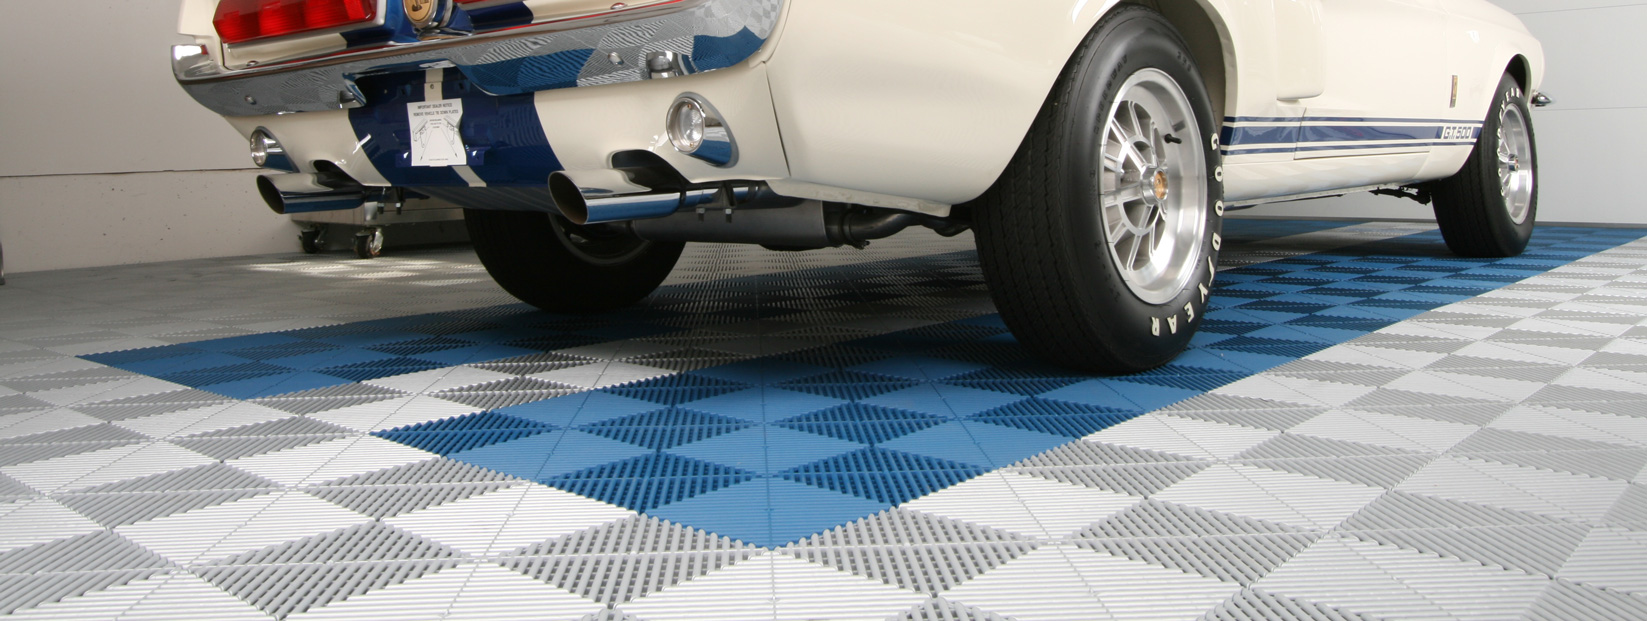 Garage Flooring Tiles Cincinnati